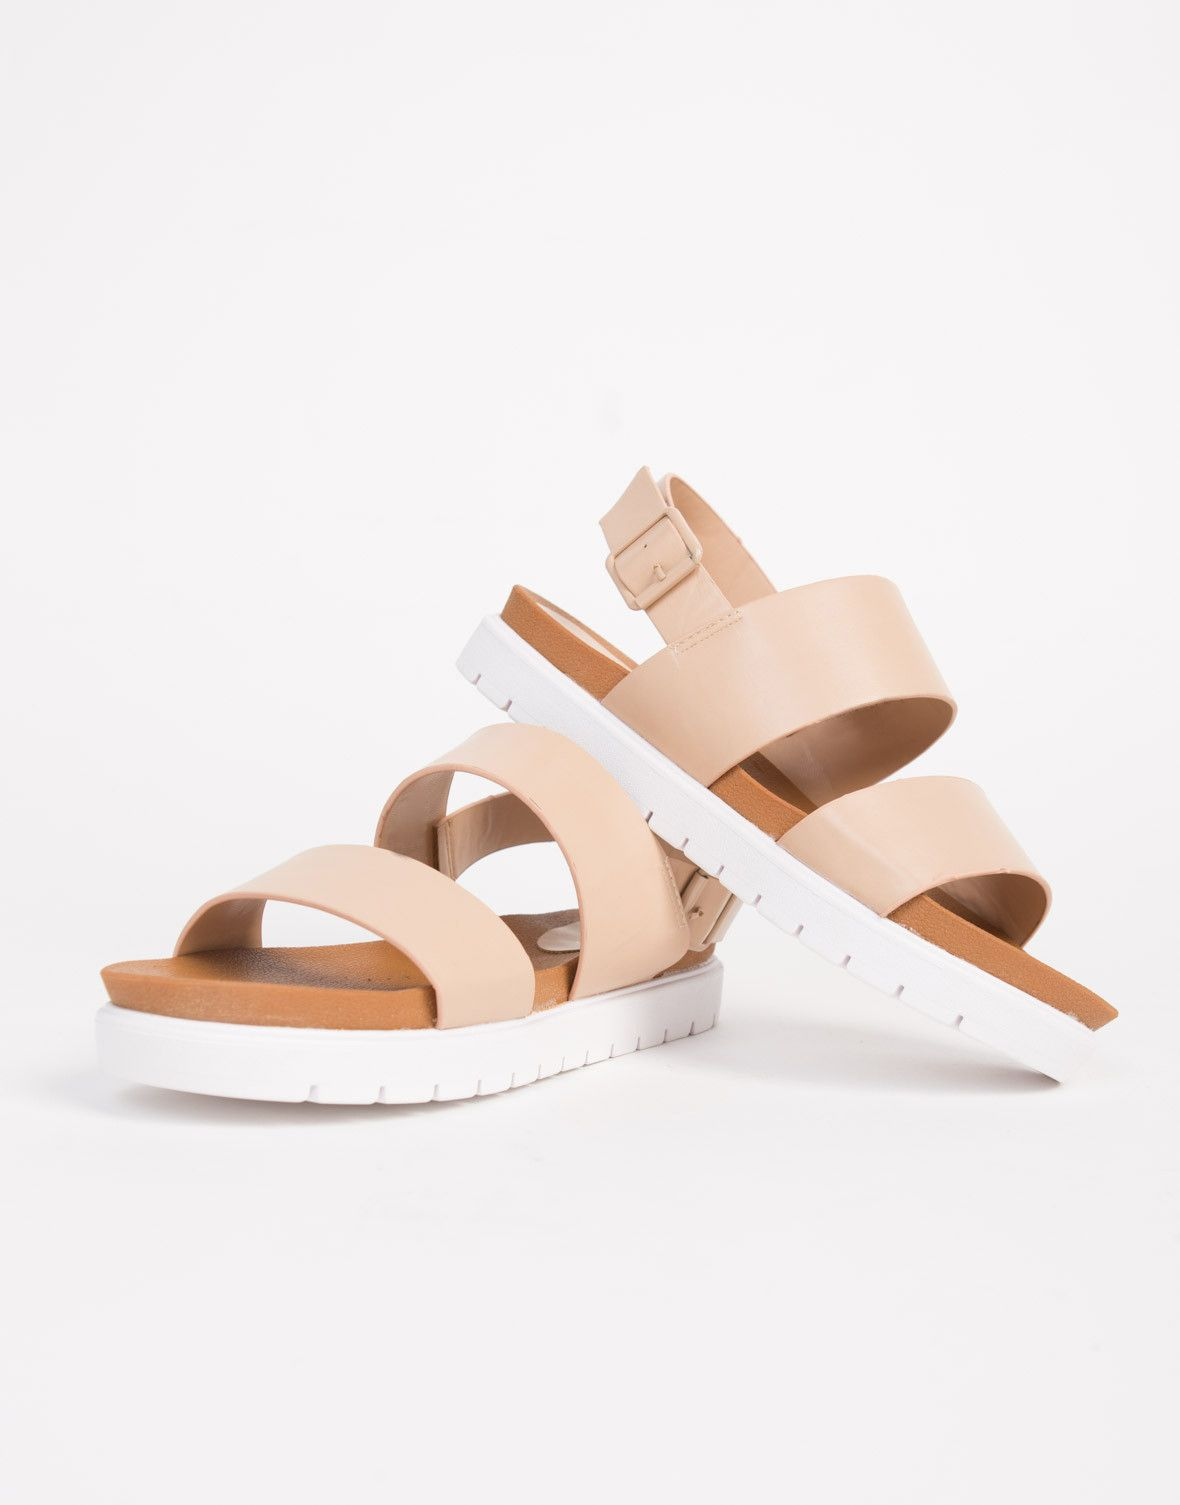 6b64bdabcab These Banded Leather Flatfrom Sandals are all about comfort. Pair these  sandals with a casual sporty one-piece outfit for a comfy day out.